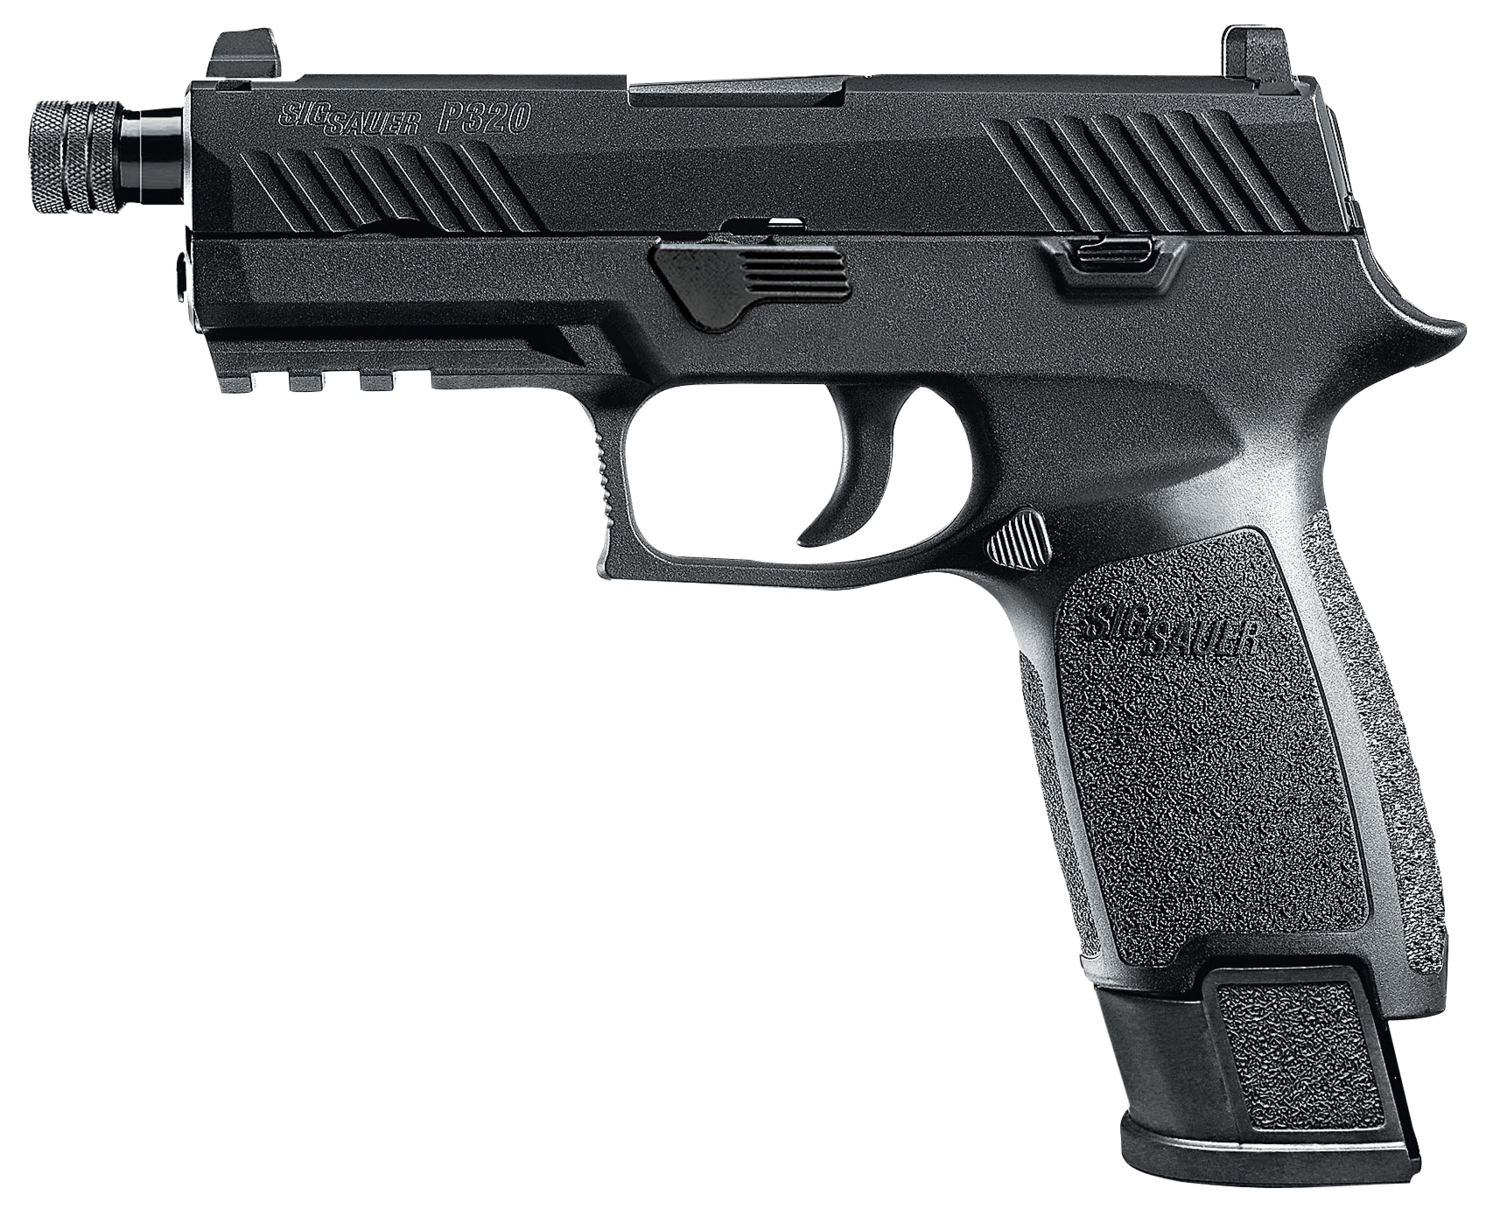 """Sig Sauer - P320 Carry TACOPS Double 9mm Luger 4.6"""" TB 21+1 - Black Polymer Grip/Frame Grip - Nitron Stainless Steel"""